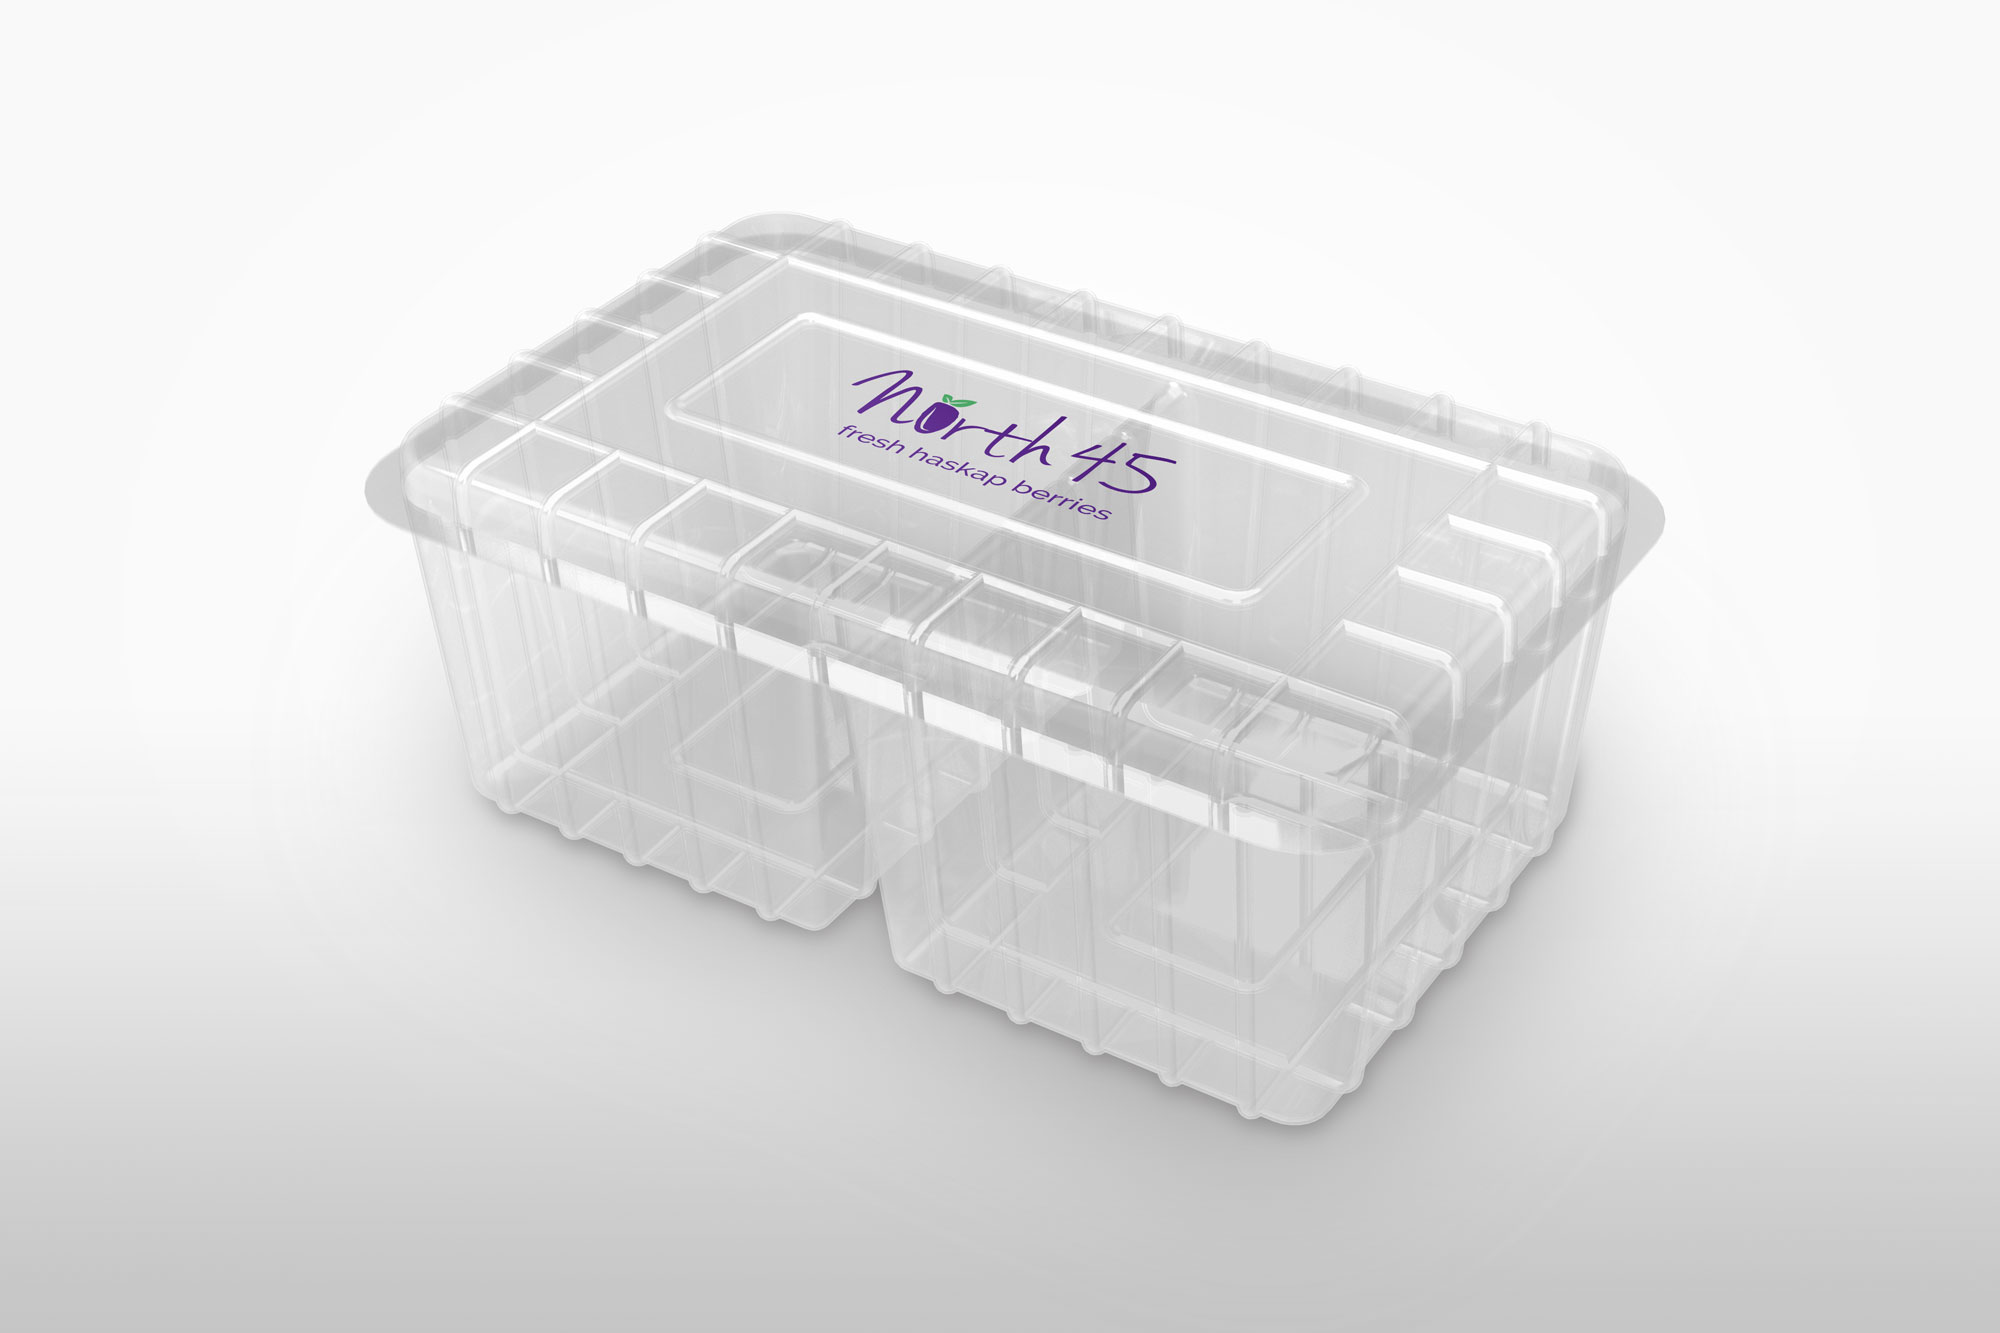 clear-box-with-label-fresh